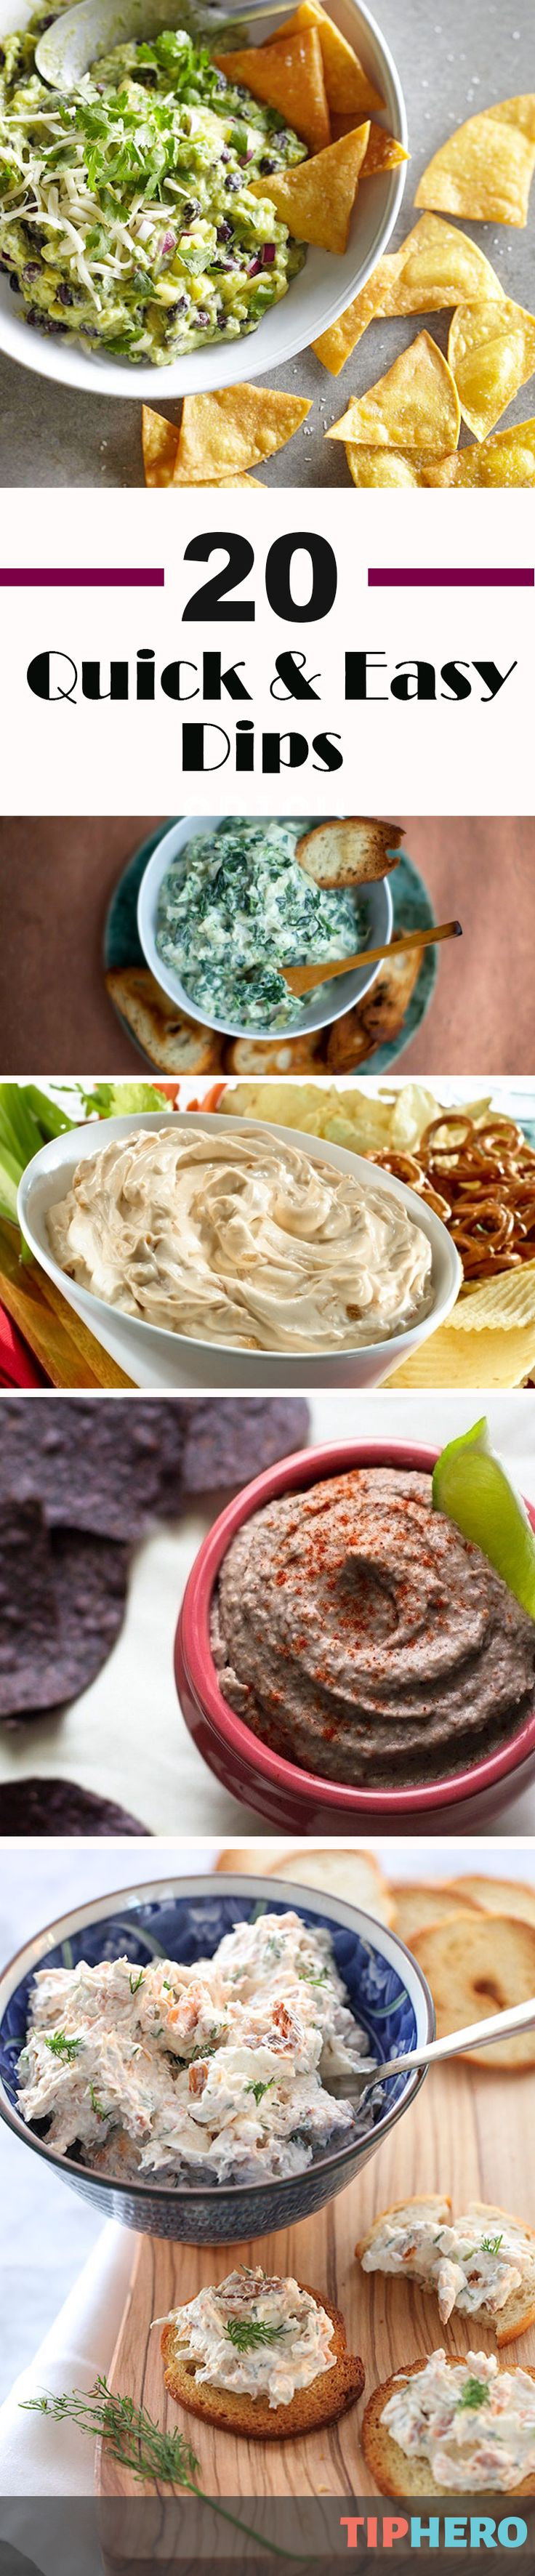 20 Quick and Easy Dips to Make for the Super Bowl | Want to try something new for your Super Bowl party? We've put together a collection of delicious dips that are easy to make and sure to please. Whether you like sweet, spicy or creamy - there's something for everyone! Click for full list.